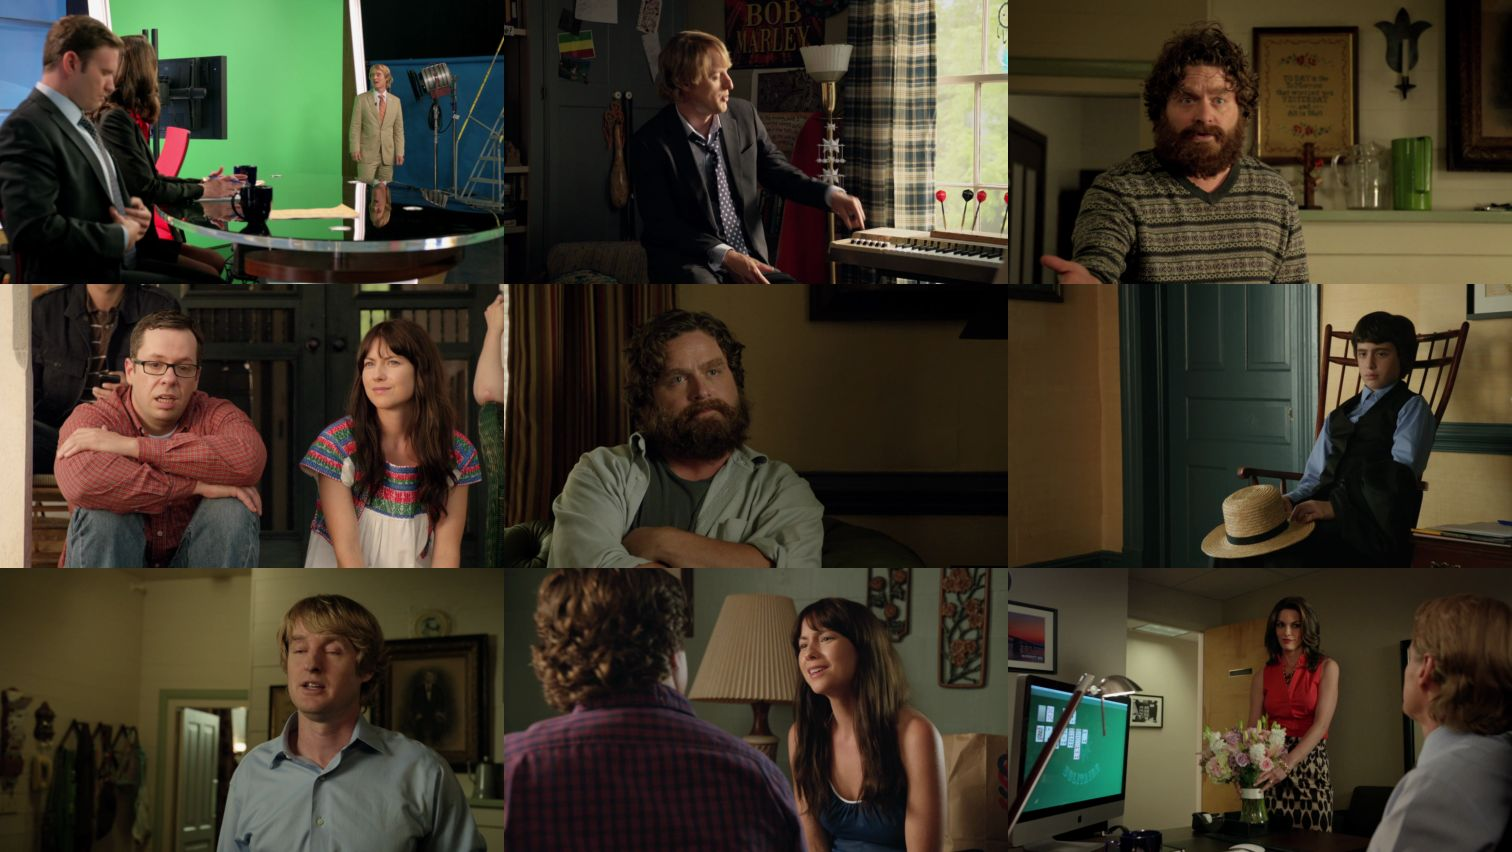 Download Are You Here (2013) BluRay 1080p 1.5GB